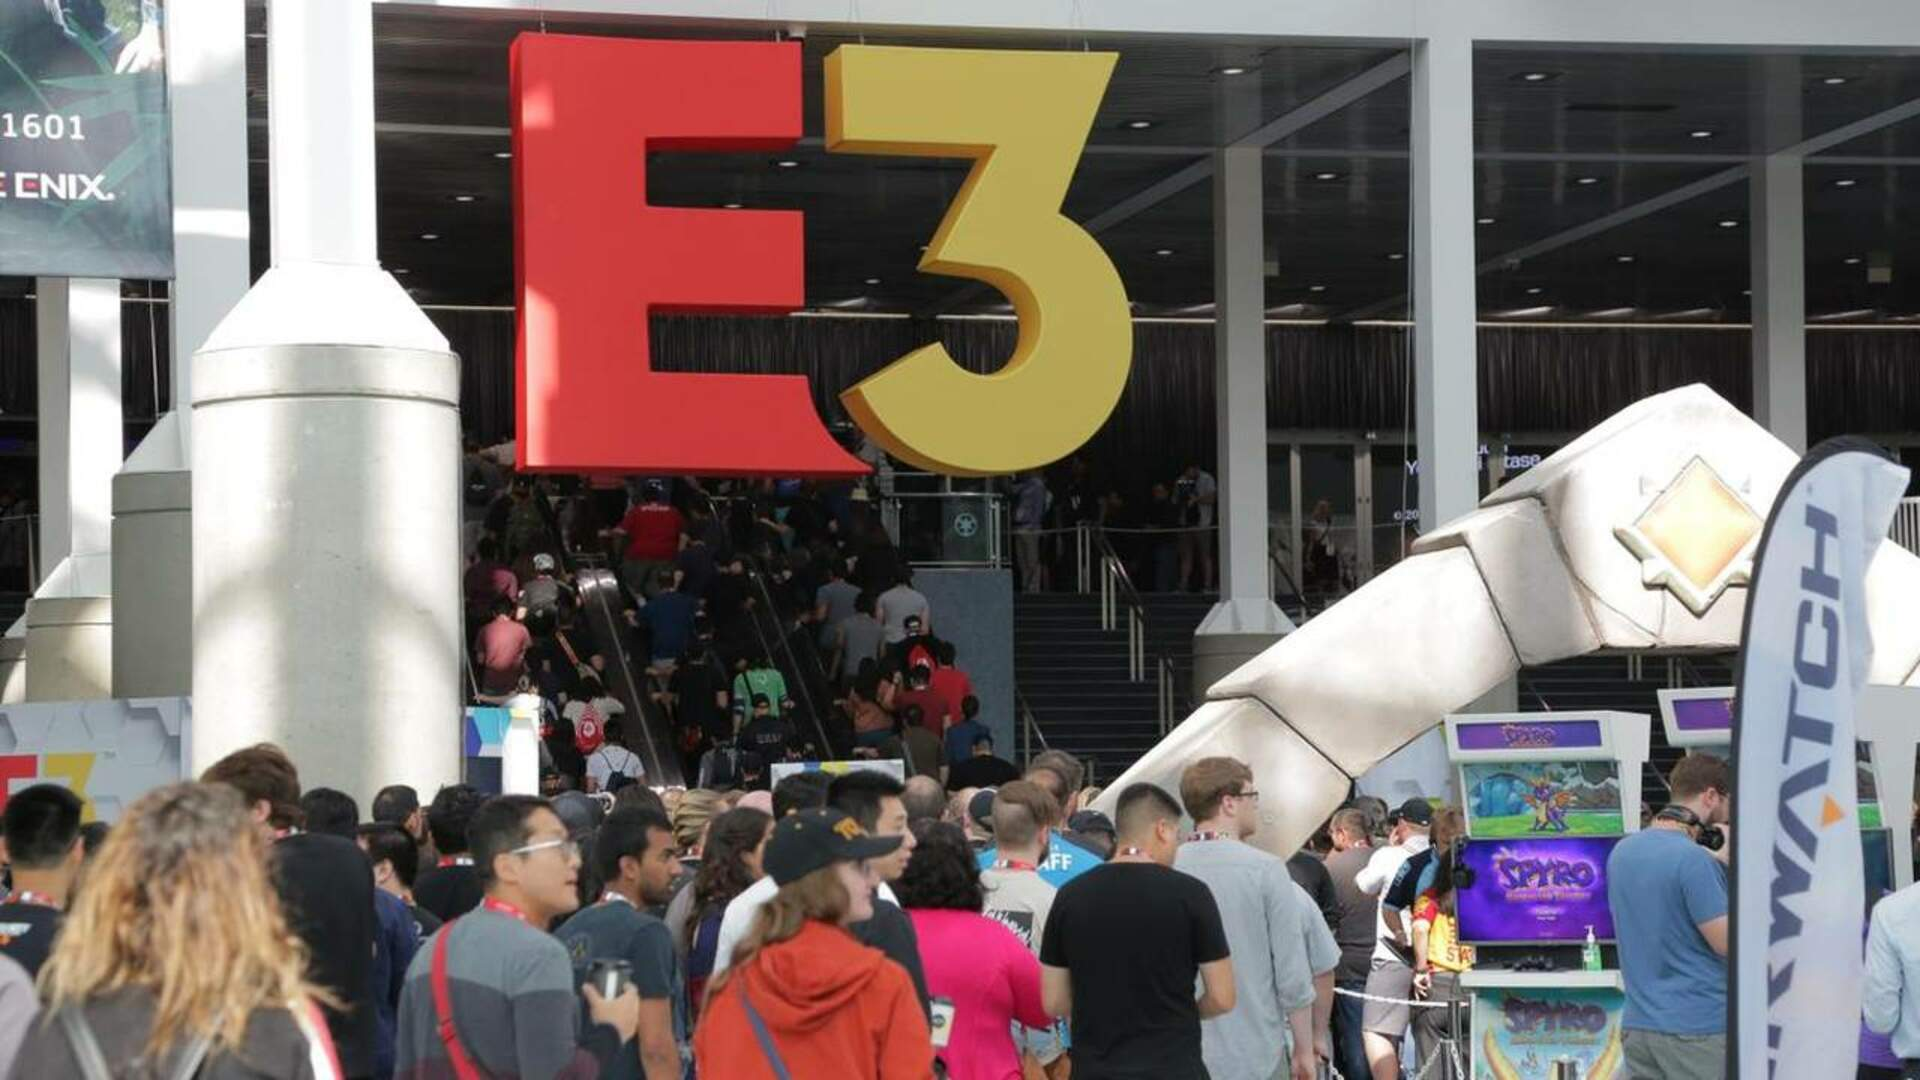 The President of The ESA On The Waning of Big Names at E3, Winning Back Media's Trust, and More